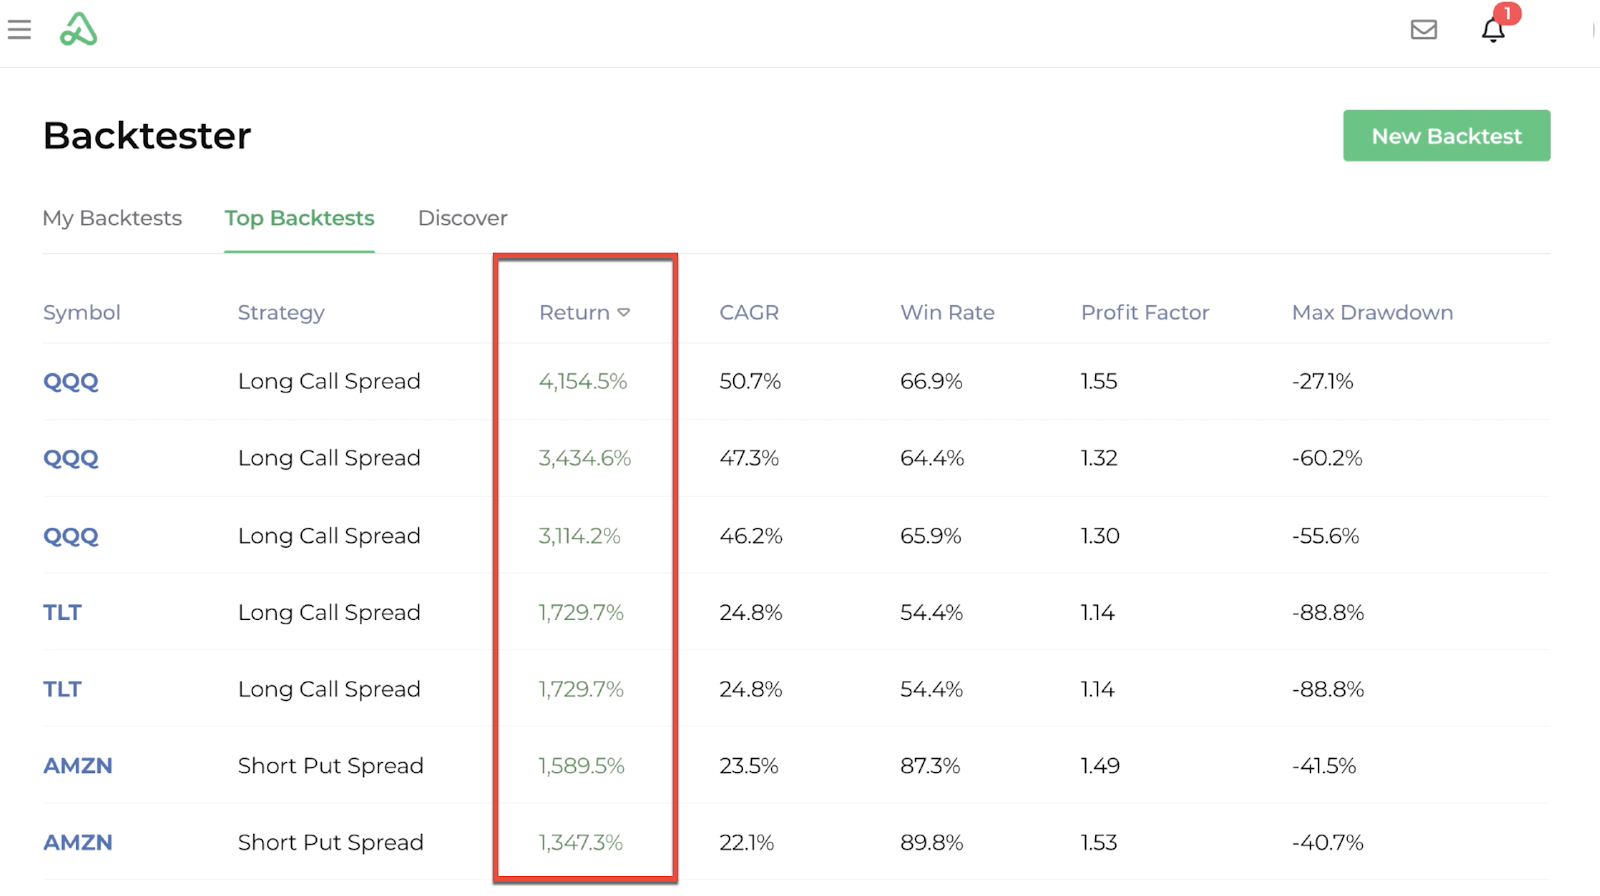 Screenshot of the top backtests display with backtests filtered by return percentage